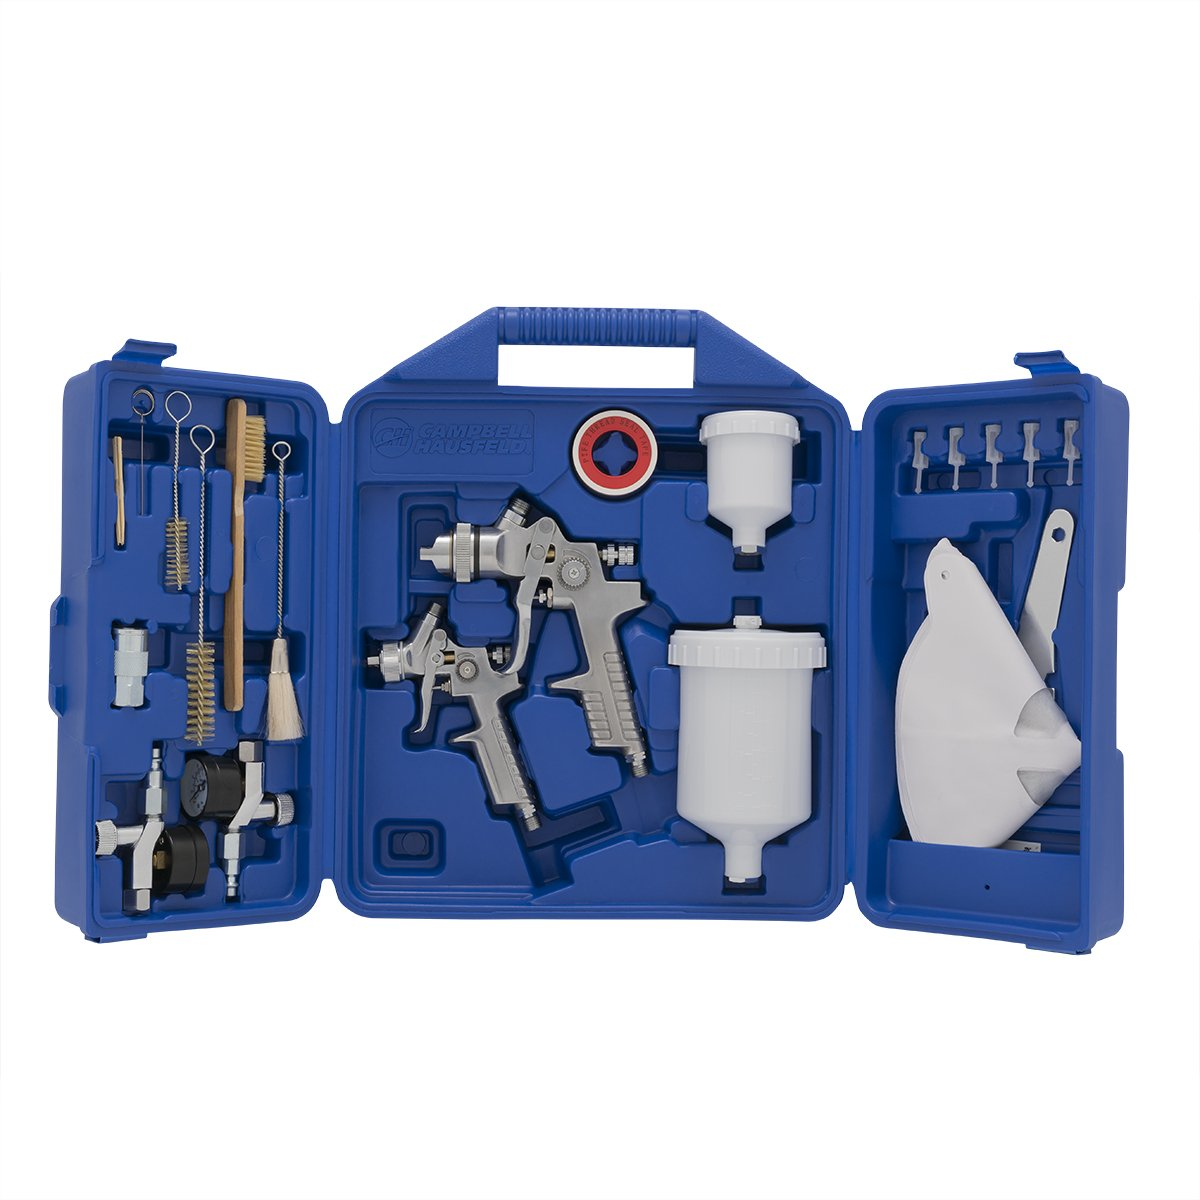 Campbell Hausfeld Paint Spray Gun Kit, Gravity Feed AT706099